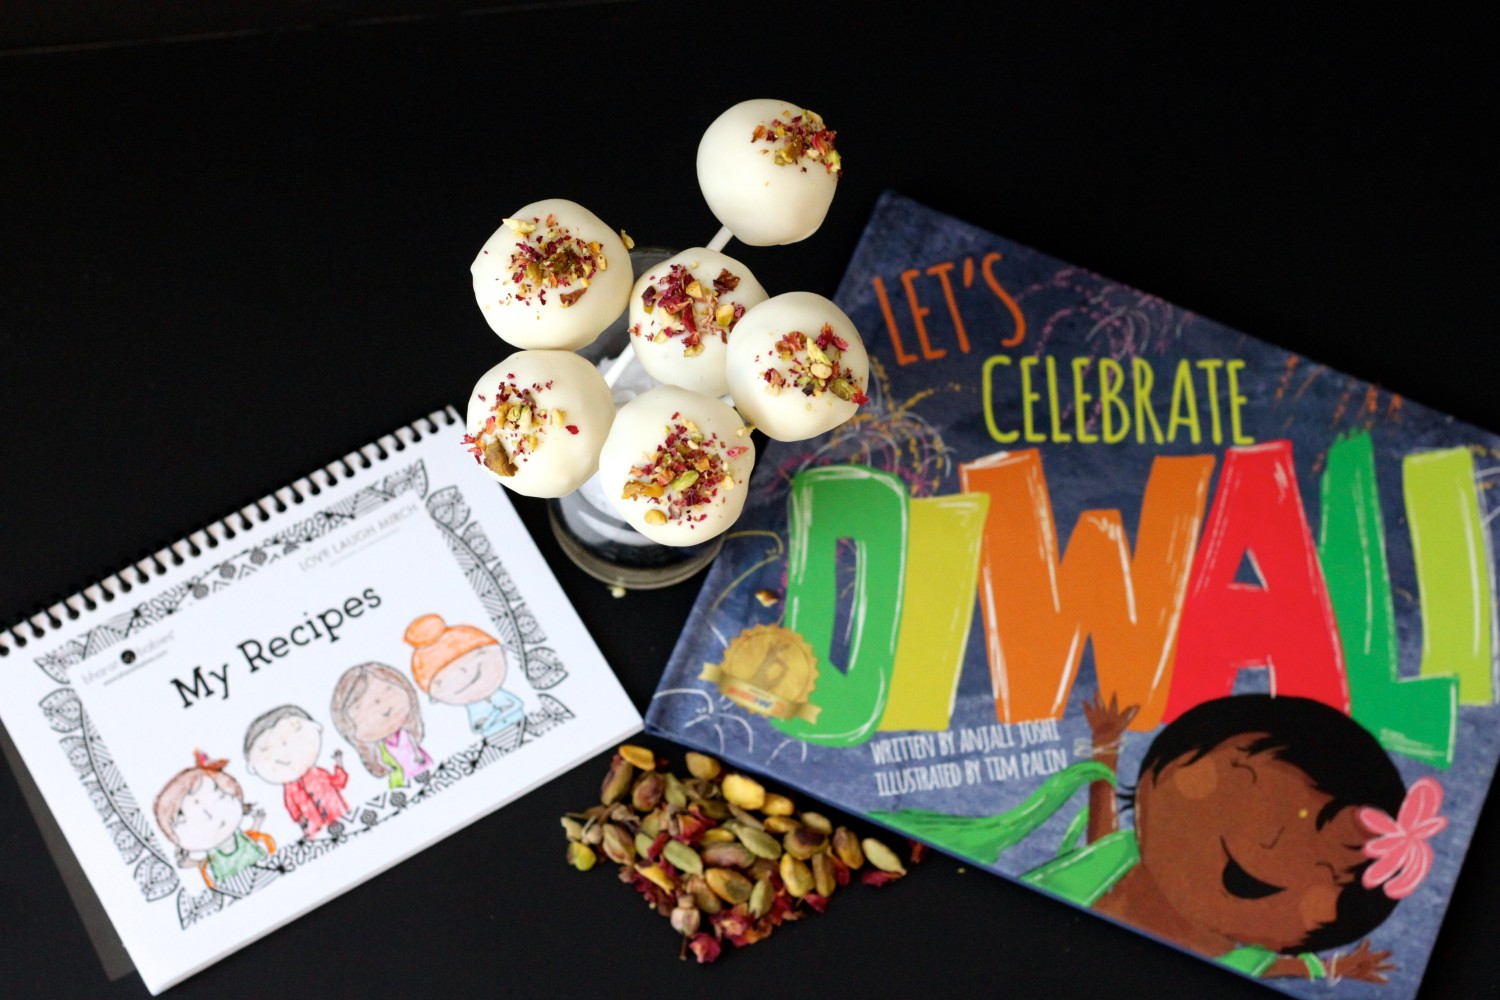 the pulitzer comics and essays asian american literary anjali joshi s let s celebrate diwali courtesy of bharat babies